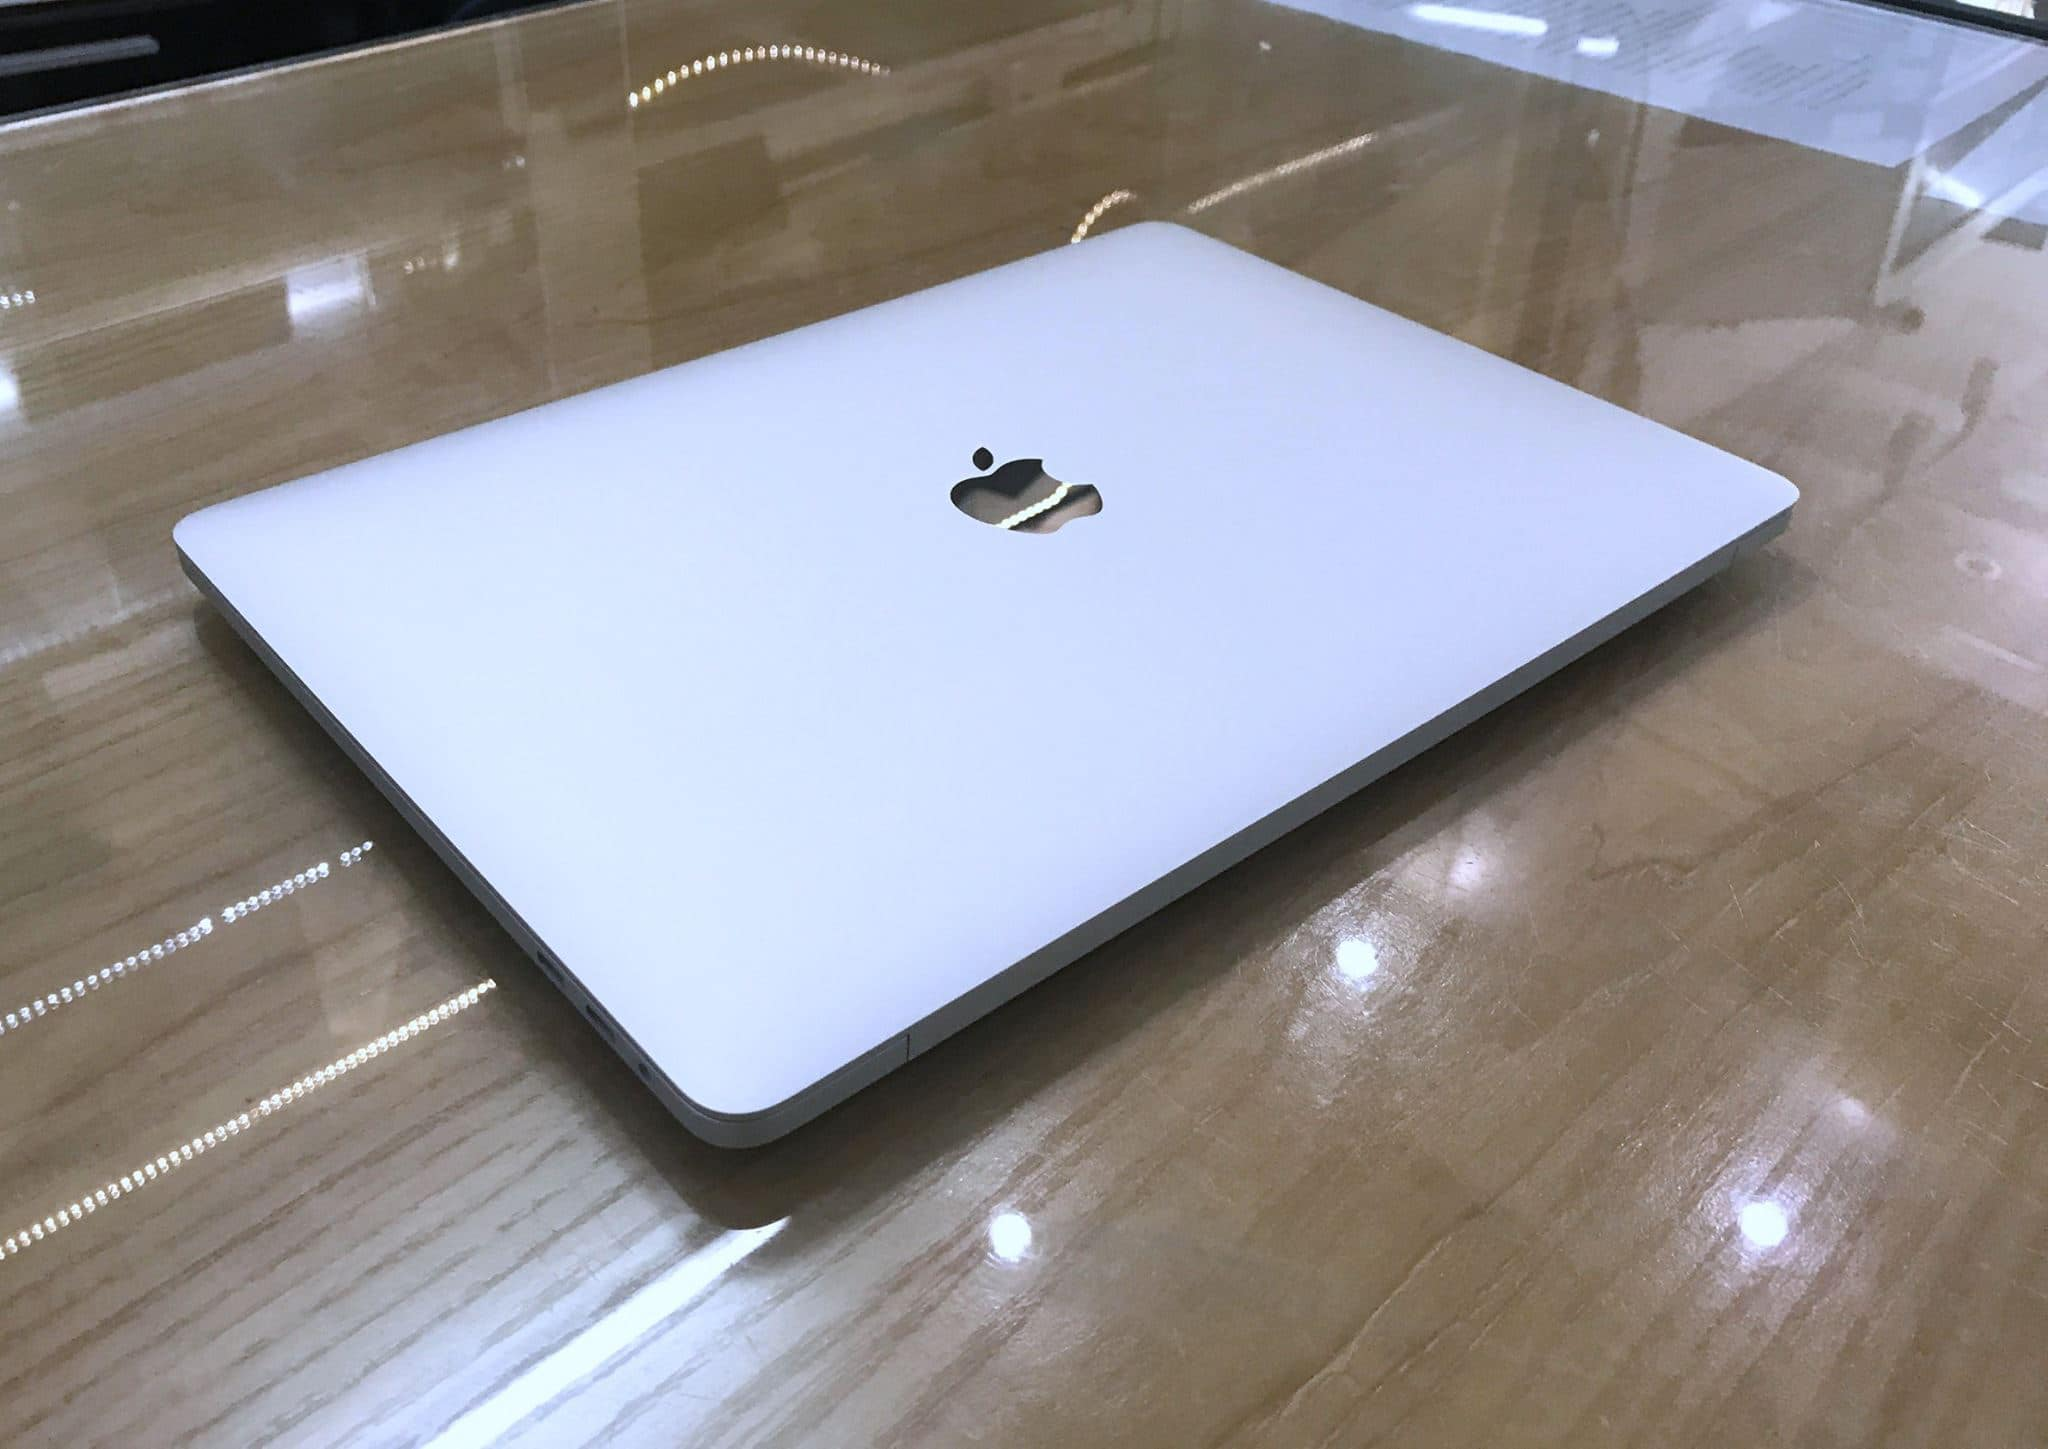 Macbook Pro MUHR2 13-inch Touchbar 256G Silver- 2019 Like New -1.jpg